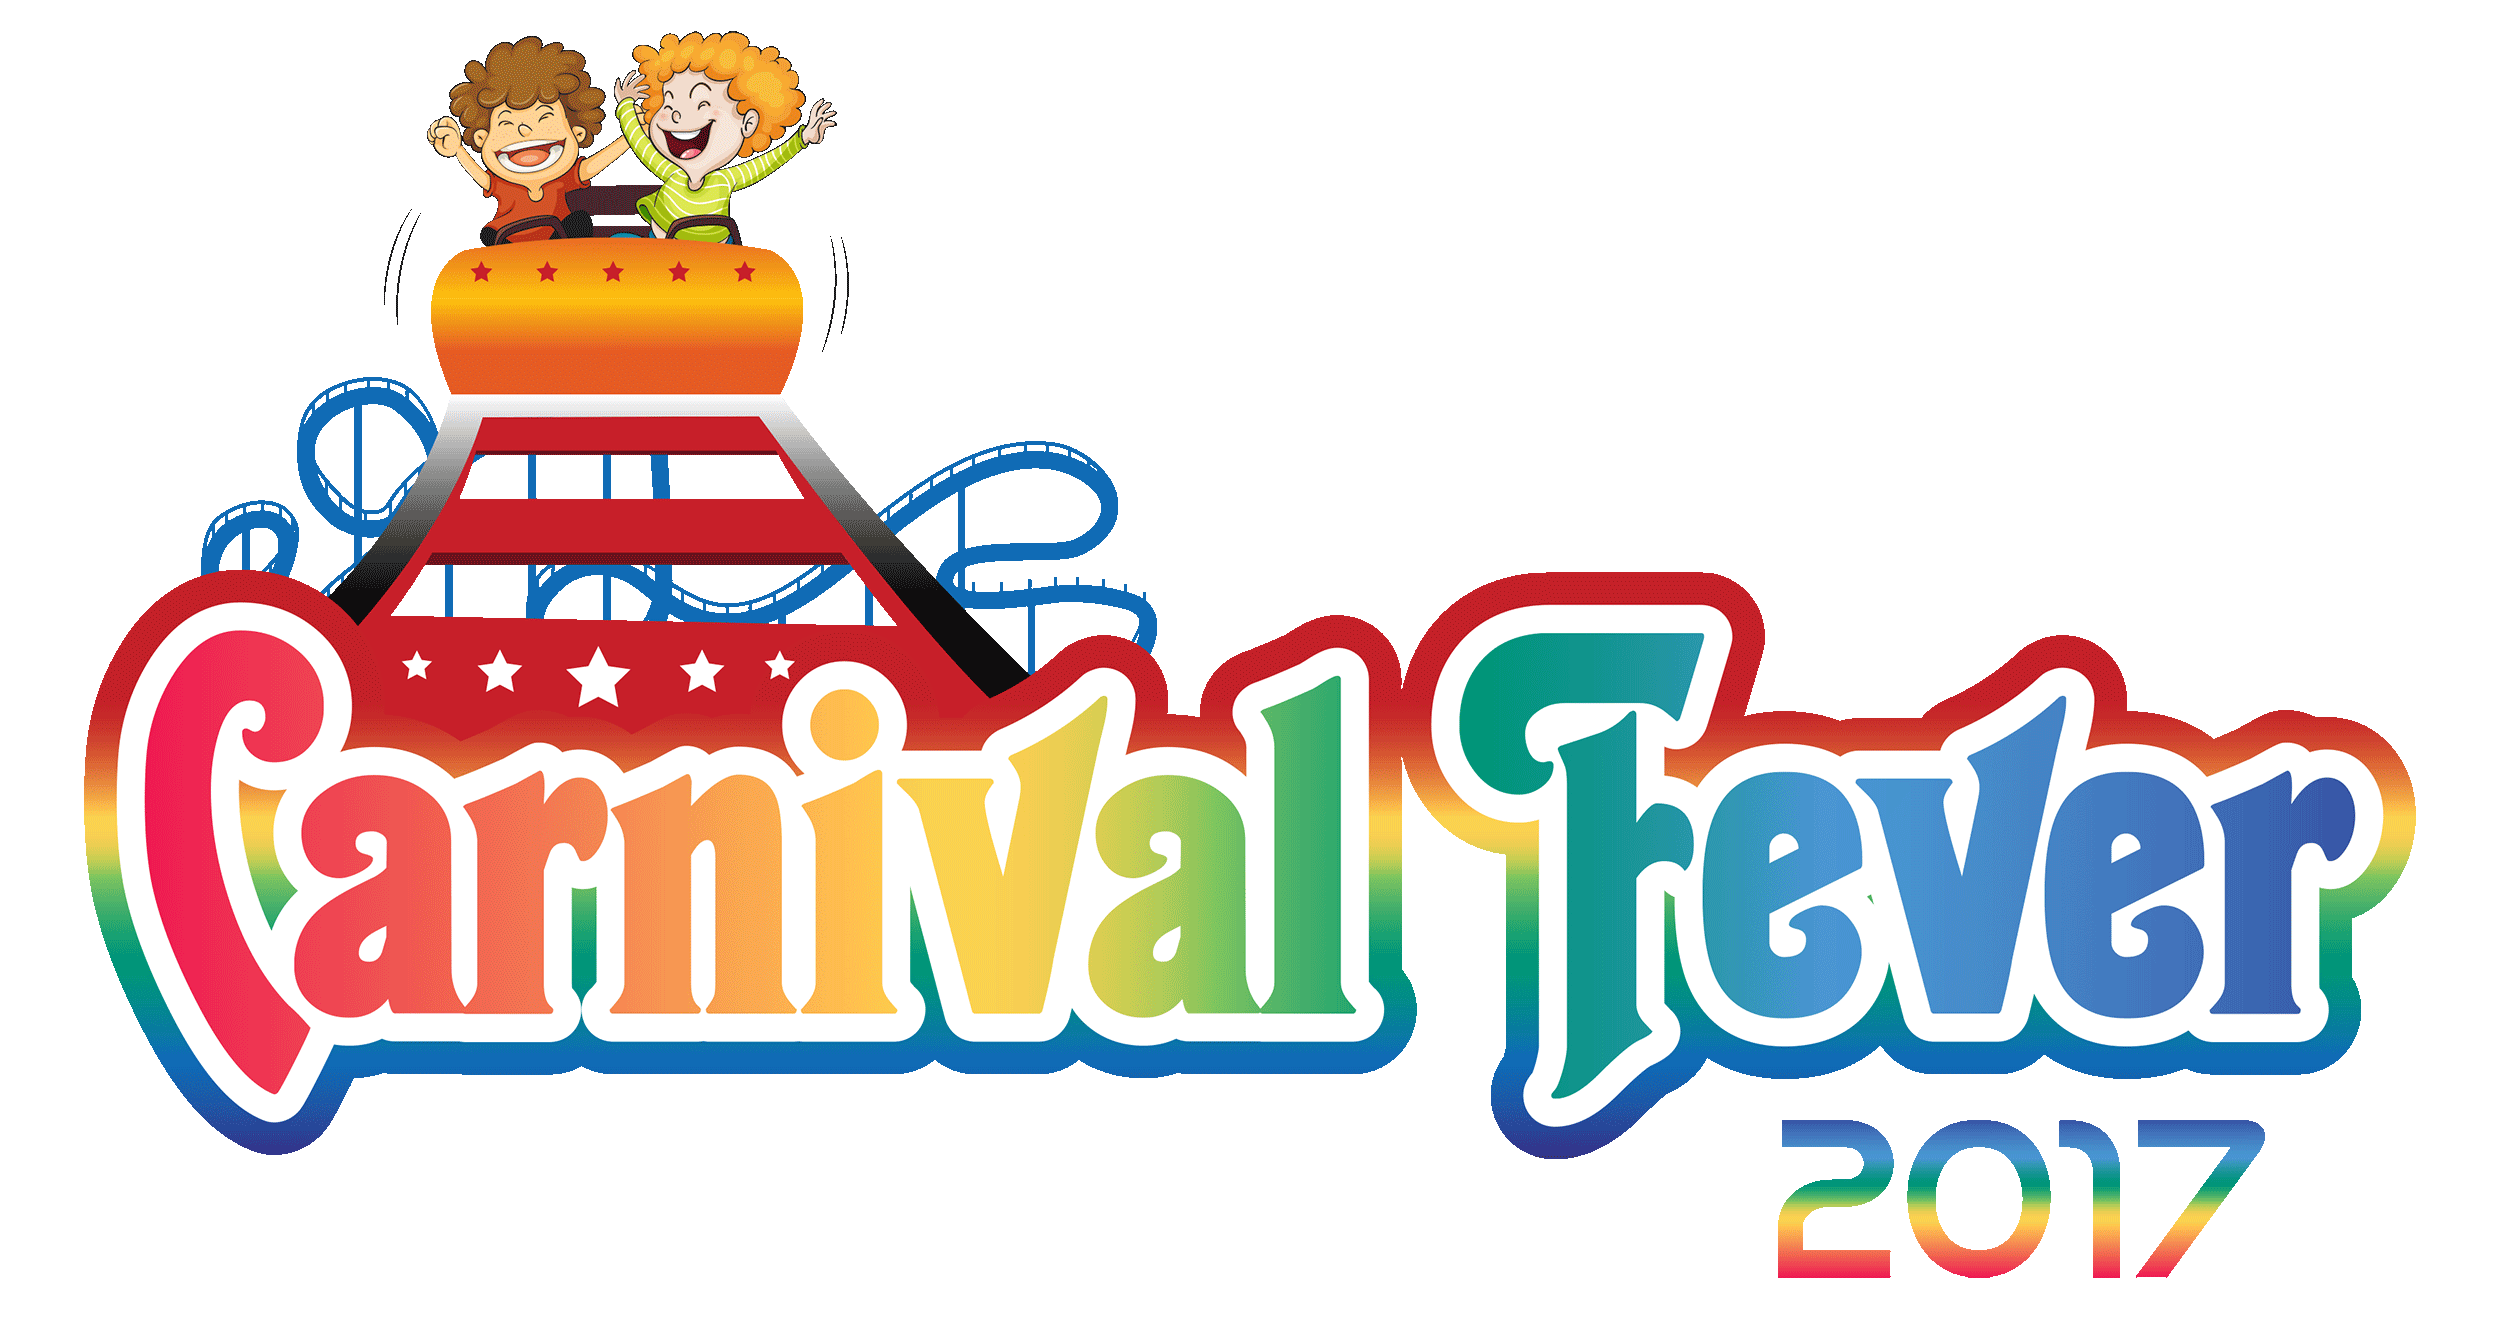 2500x1317 For Carnival Fever 2017 In Cannington From Ticketbooth